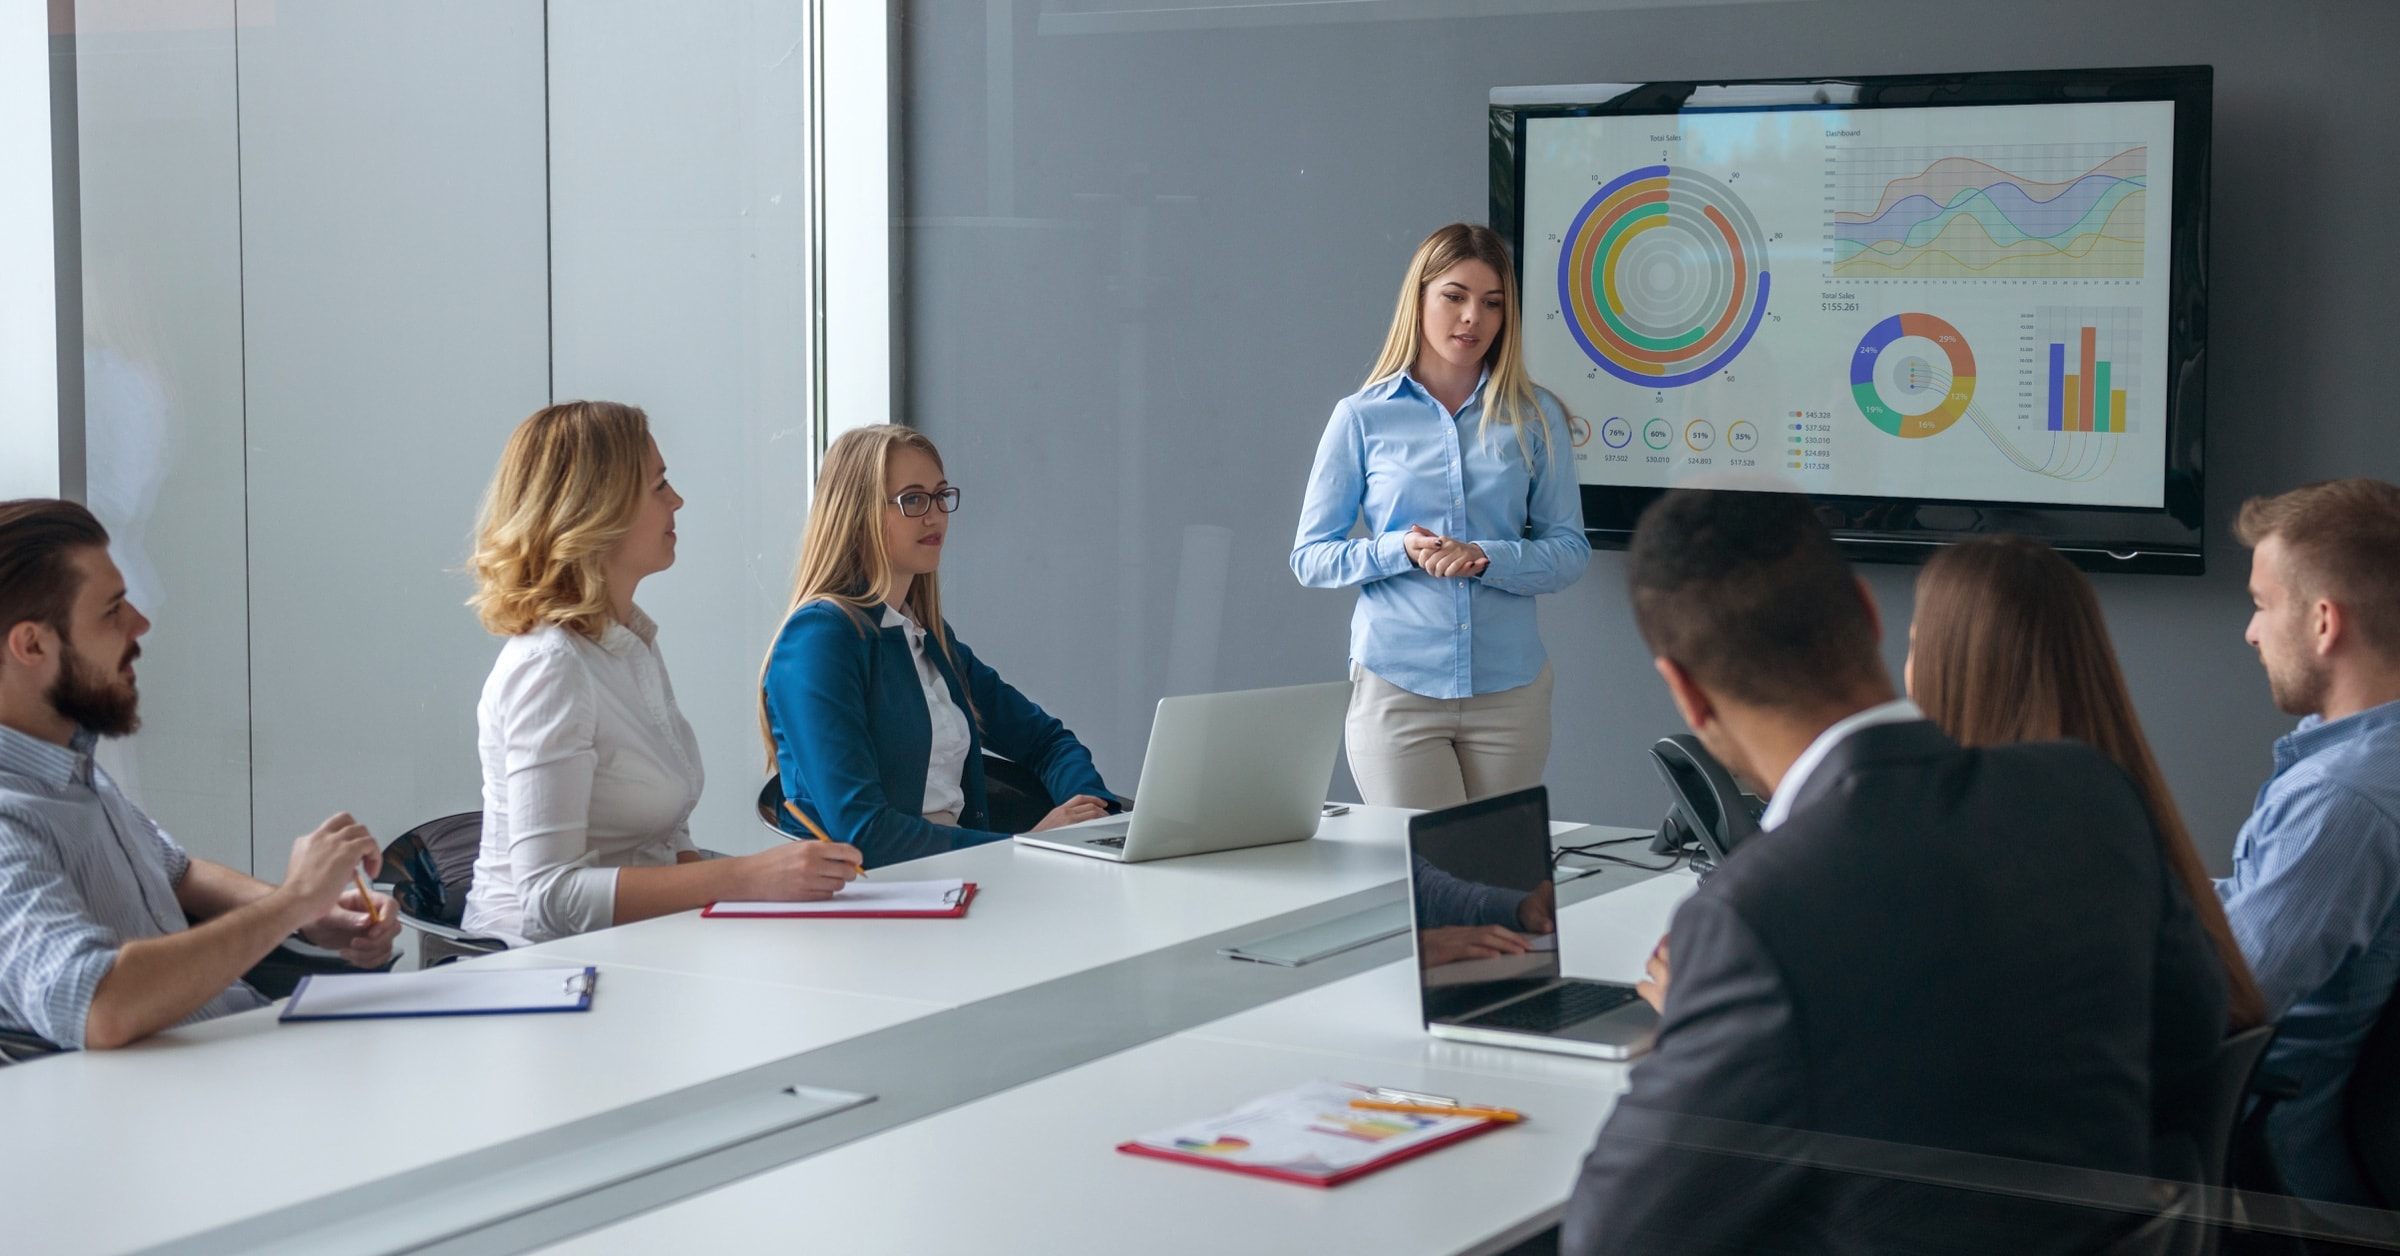 An effective demo presentation allows potential clients to see and feel how things will be better for them if they buy or invest in your company. Here are seven tips for pulling of a winning demo presentation.